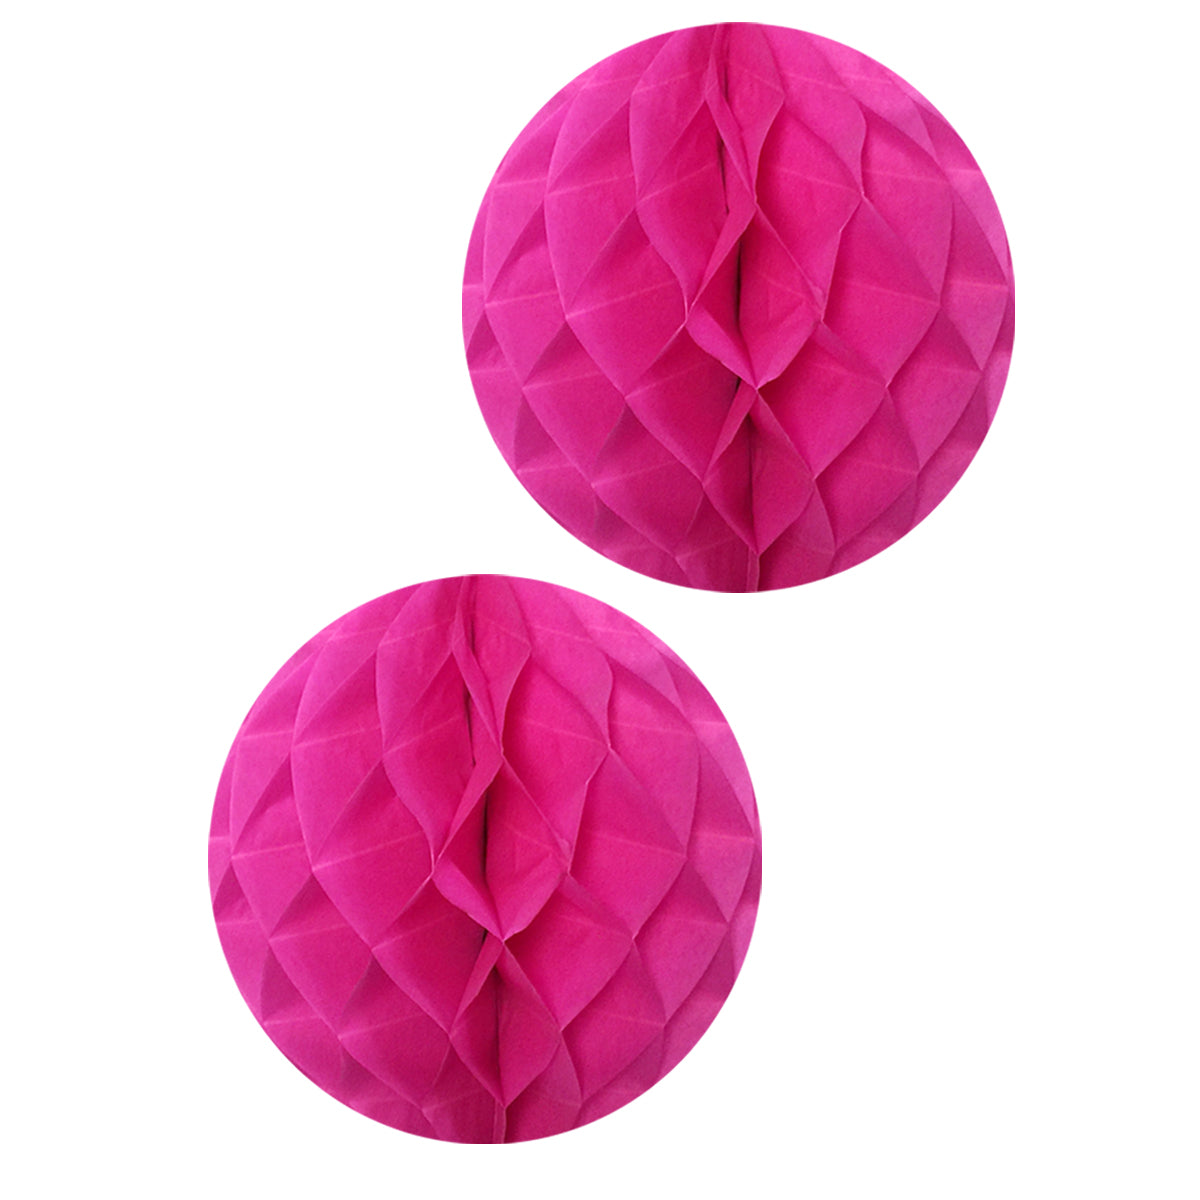 "Wrapables 16"" Set of 2 Tissue Honeycomb Ball Party Decorations"